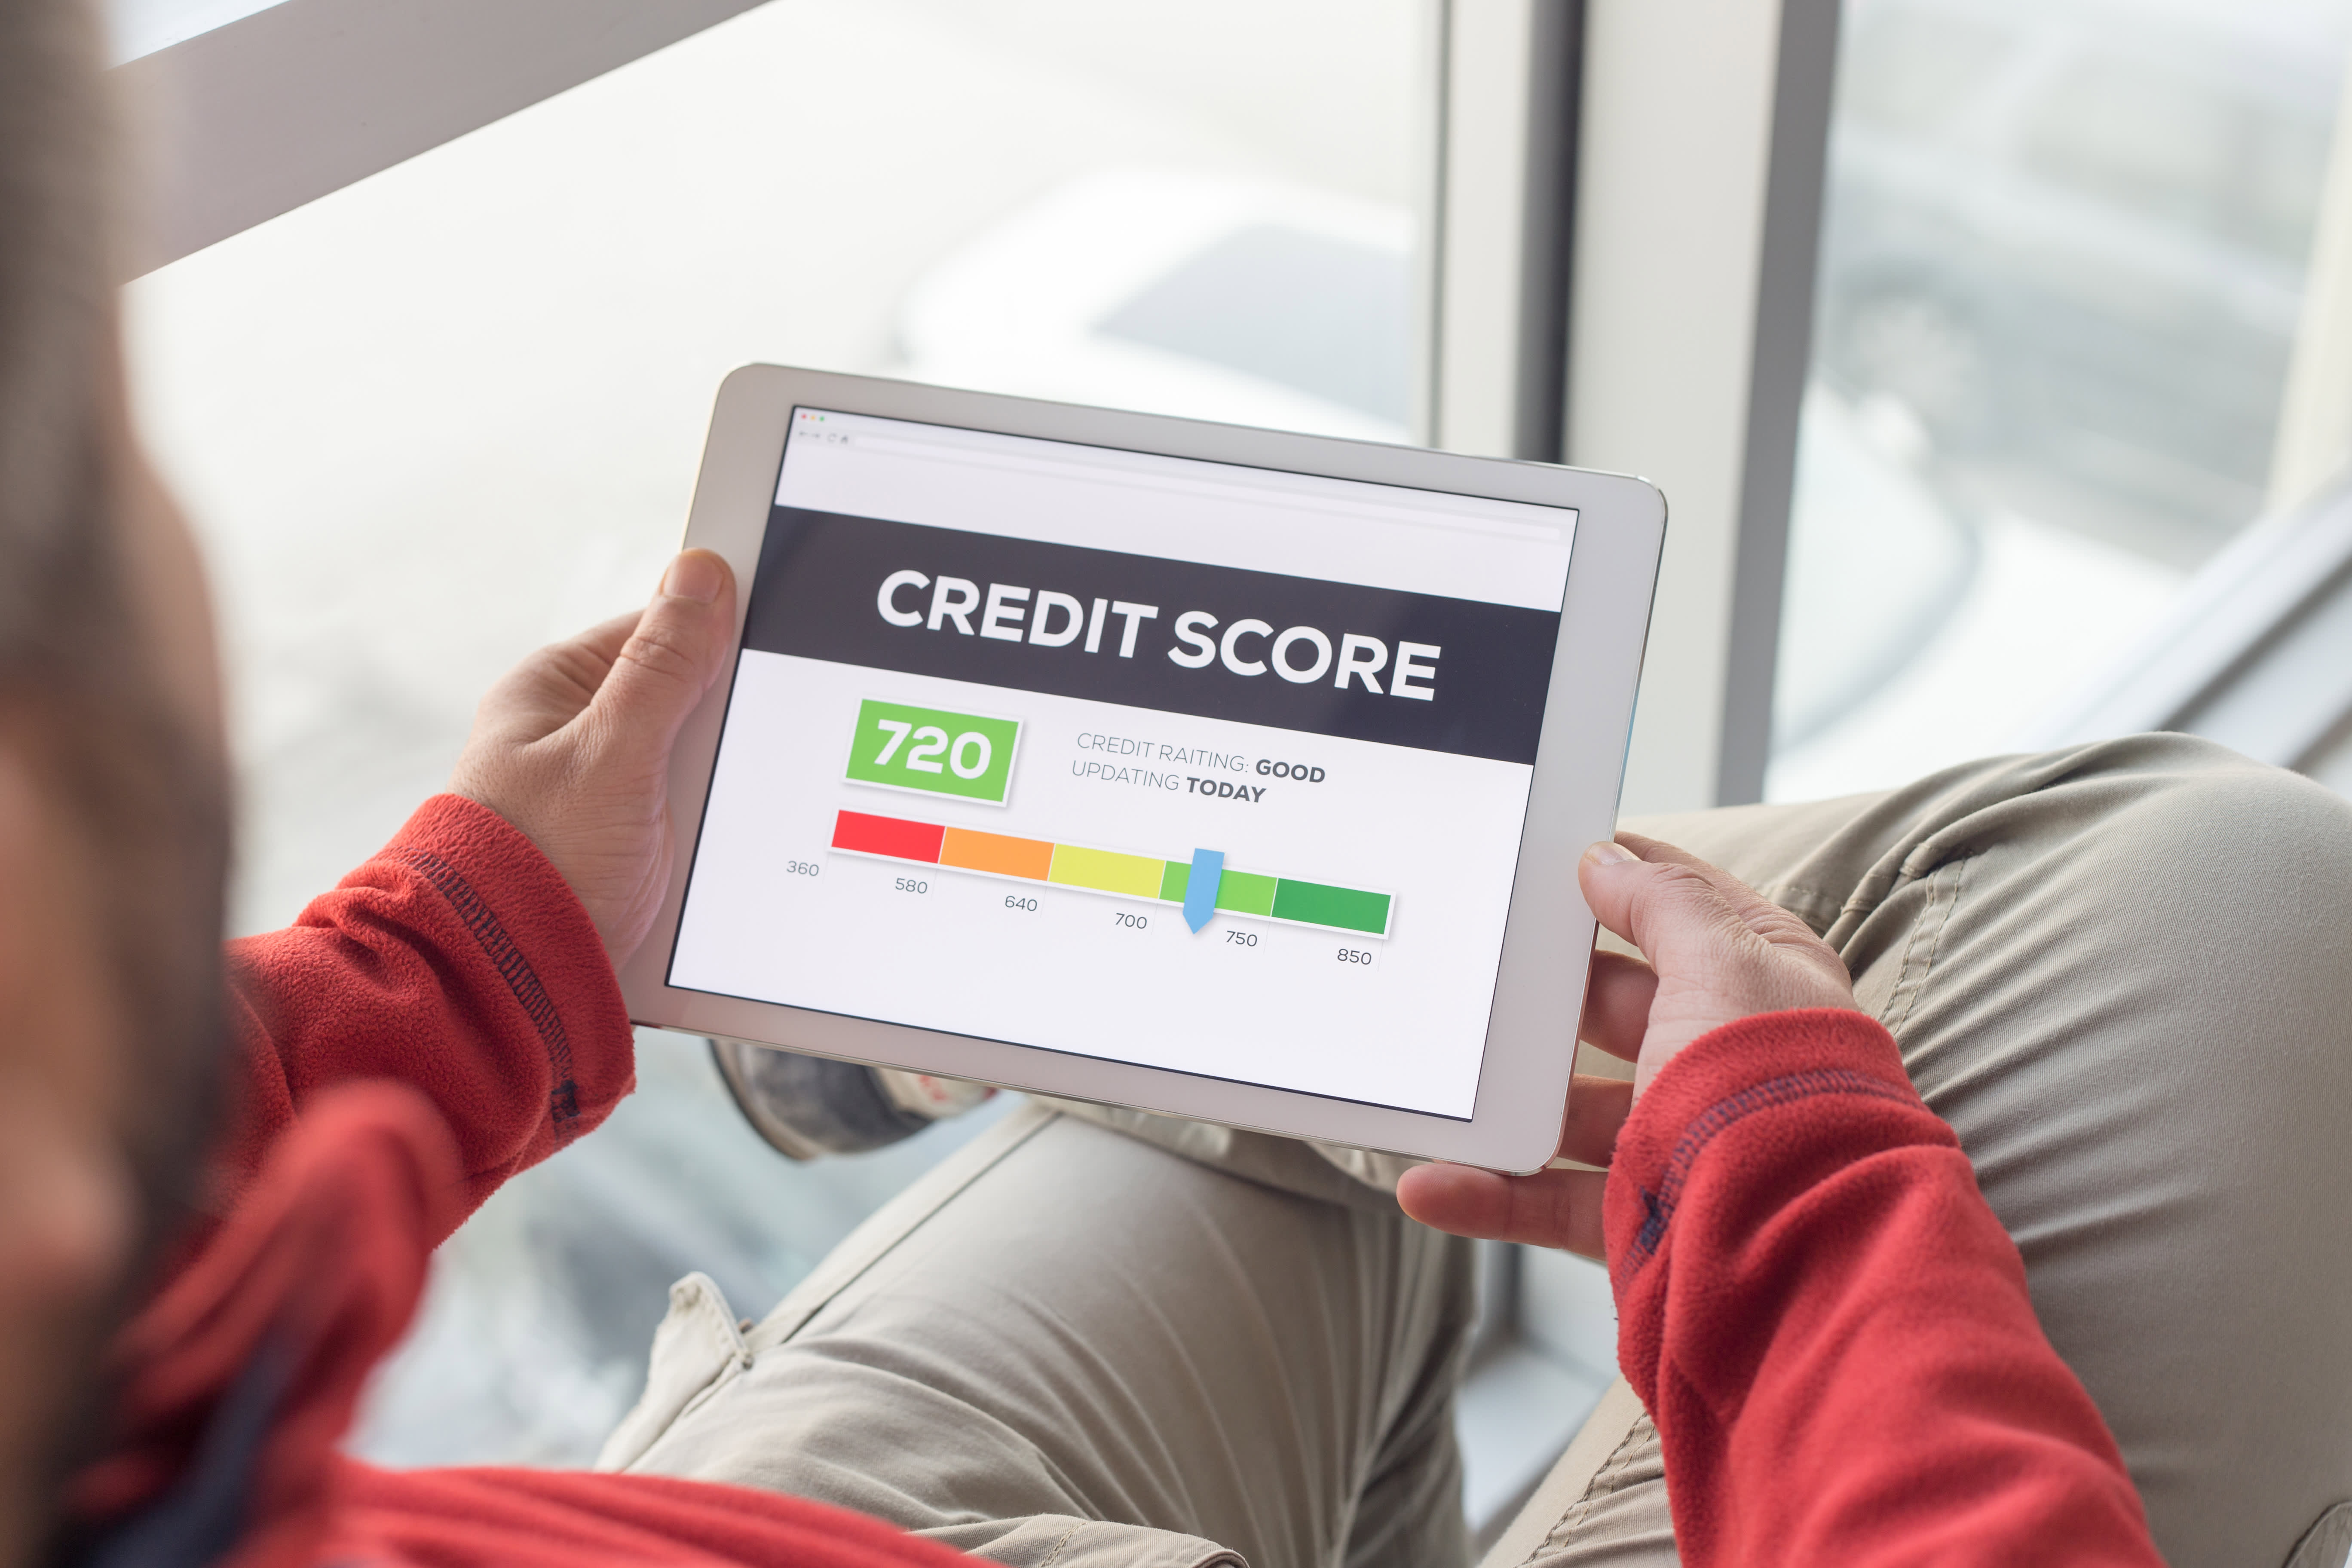 How does your salary and income impact your credit score?